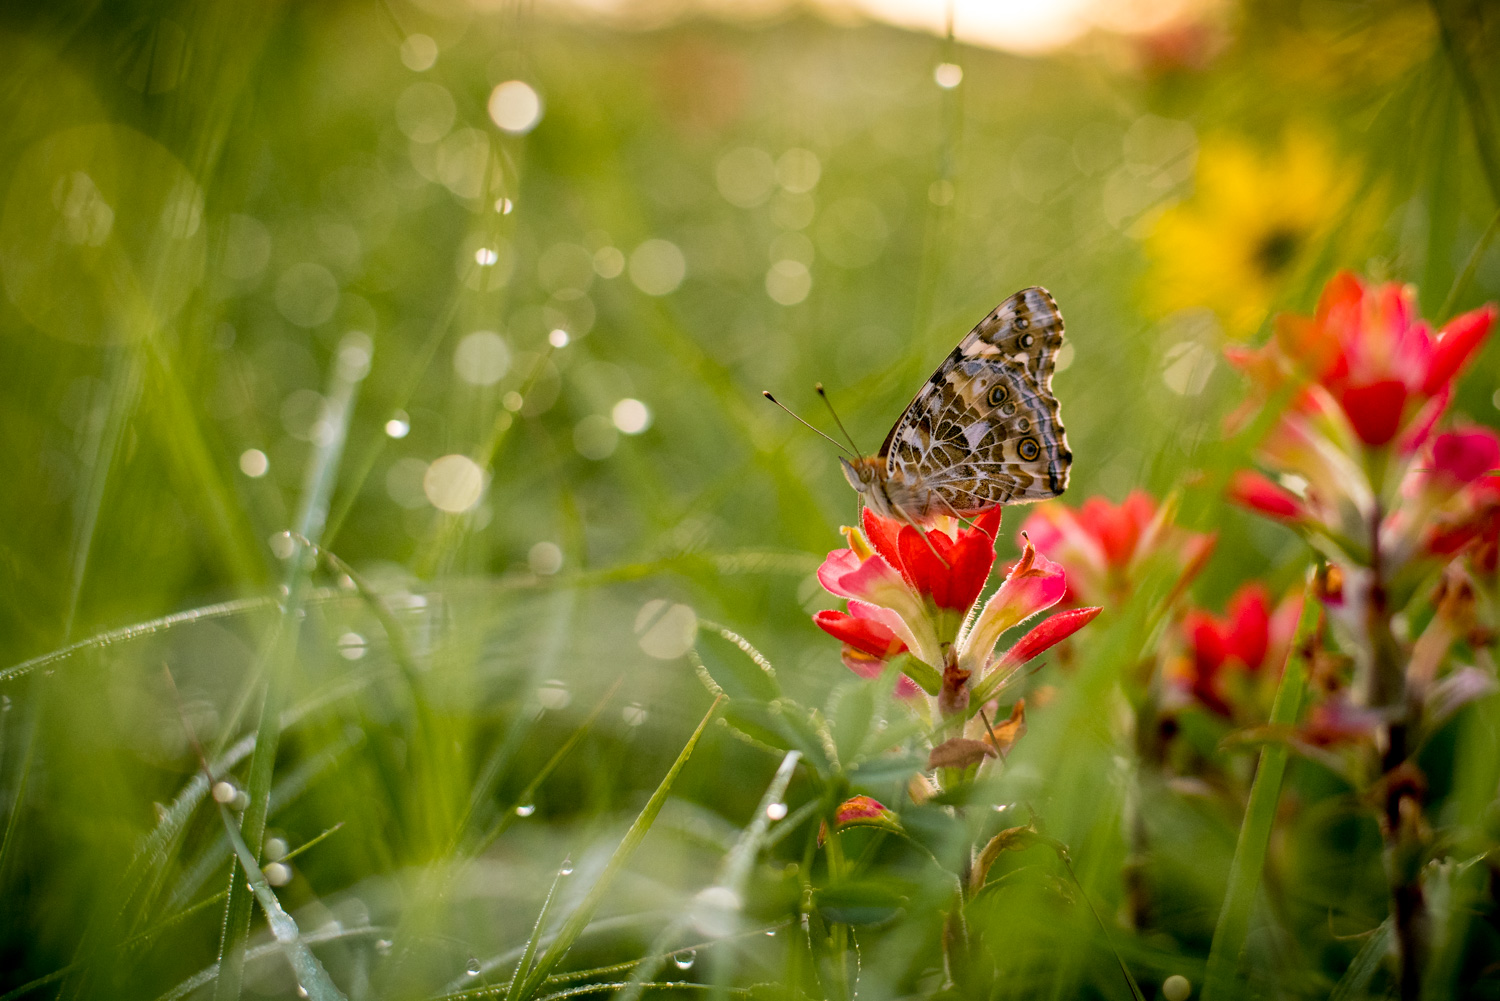 butterfly on a red flower - How to Use the Lightroom Editing Trifecta: History, Snapshot, and Virtual Copies